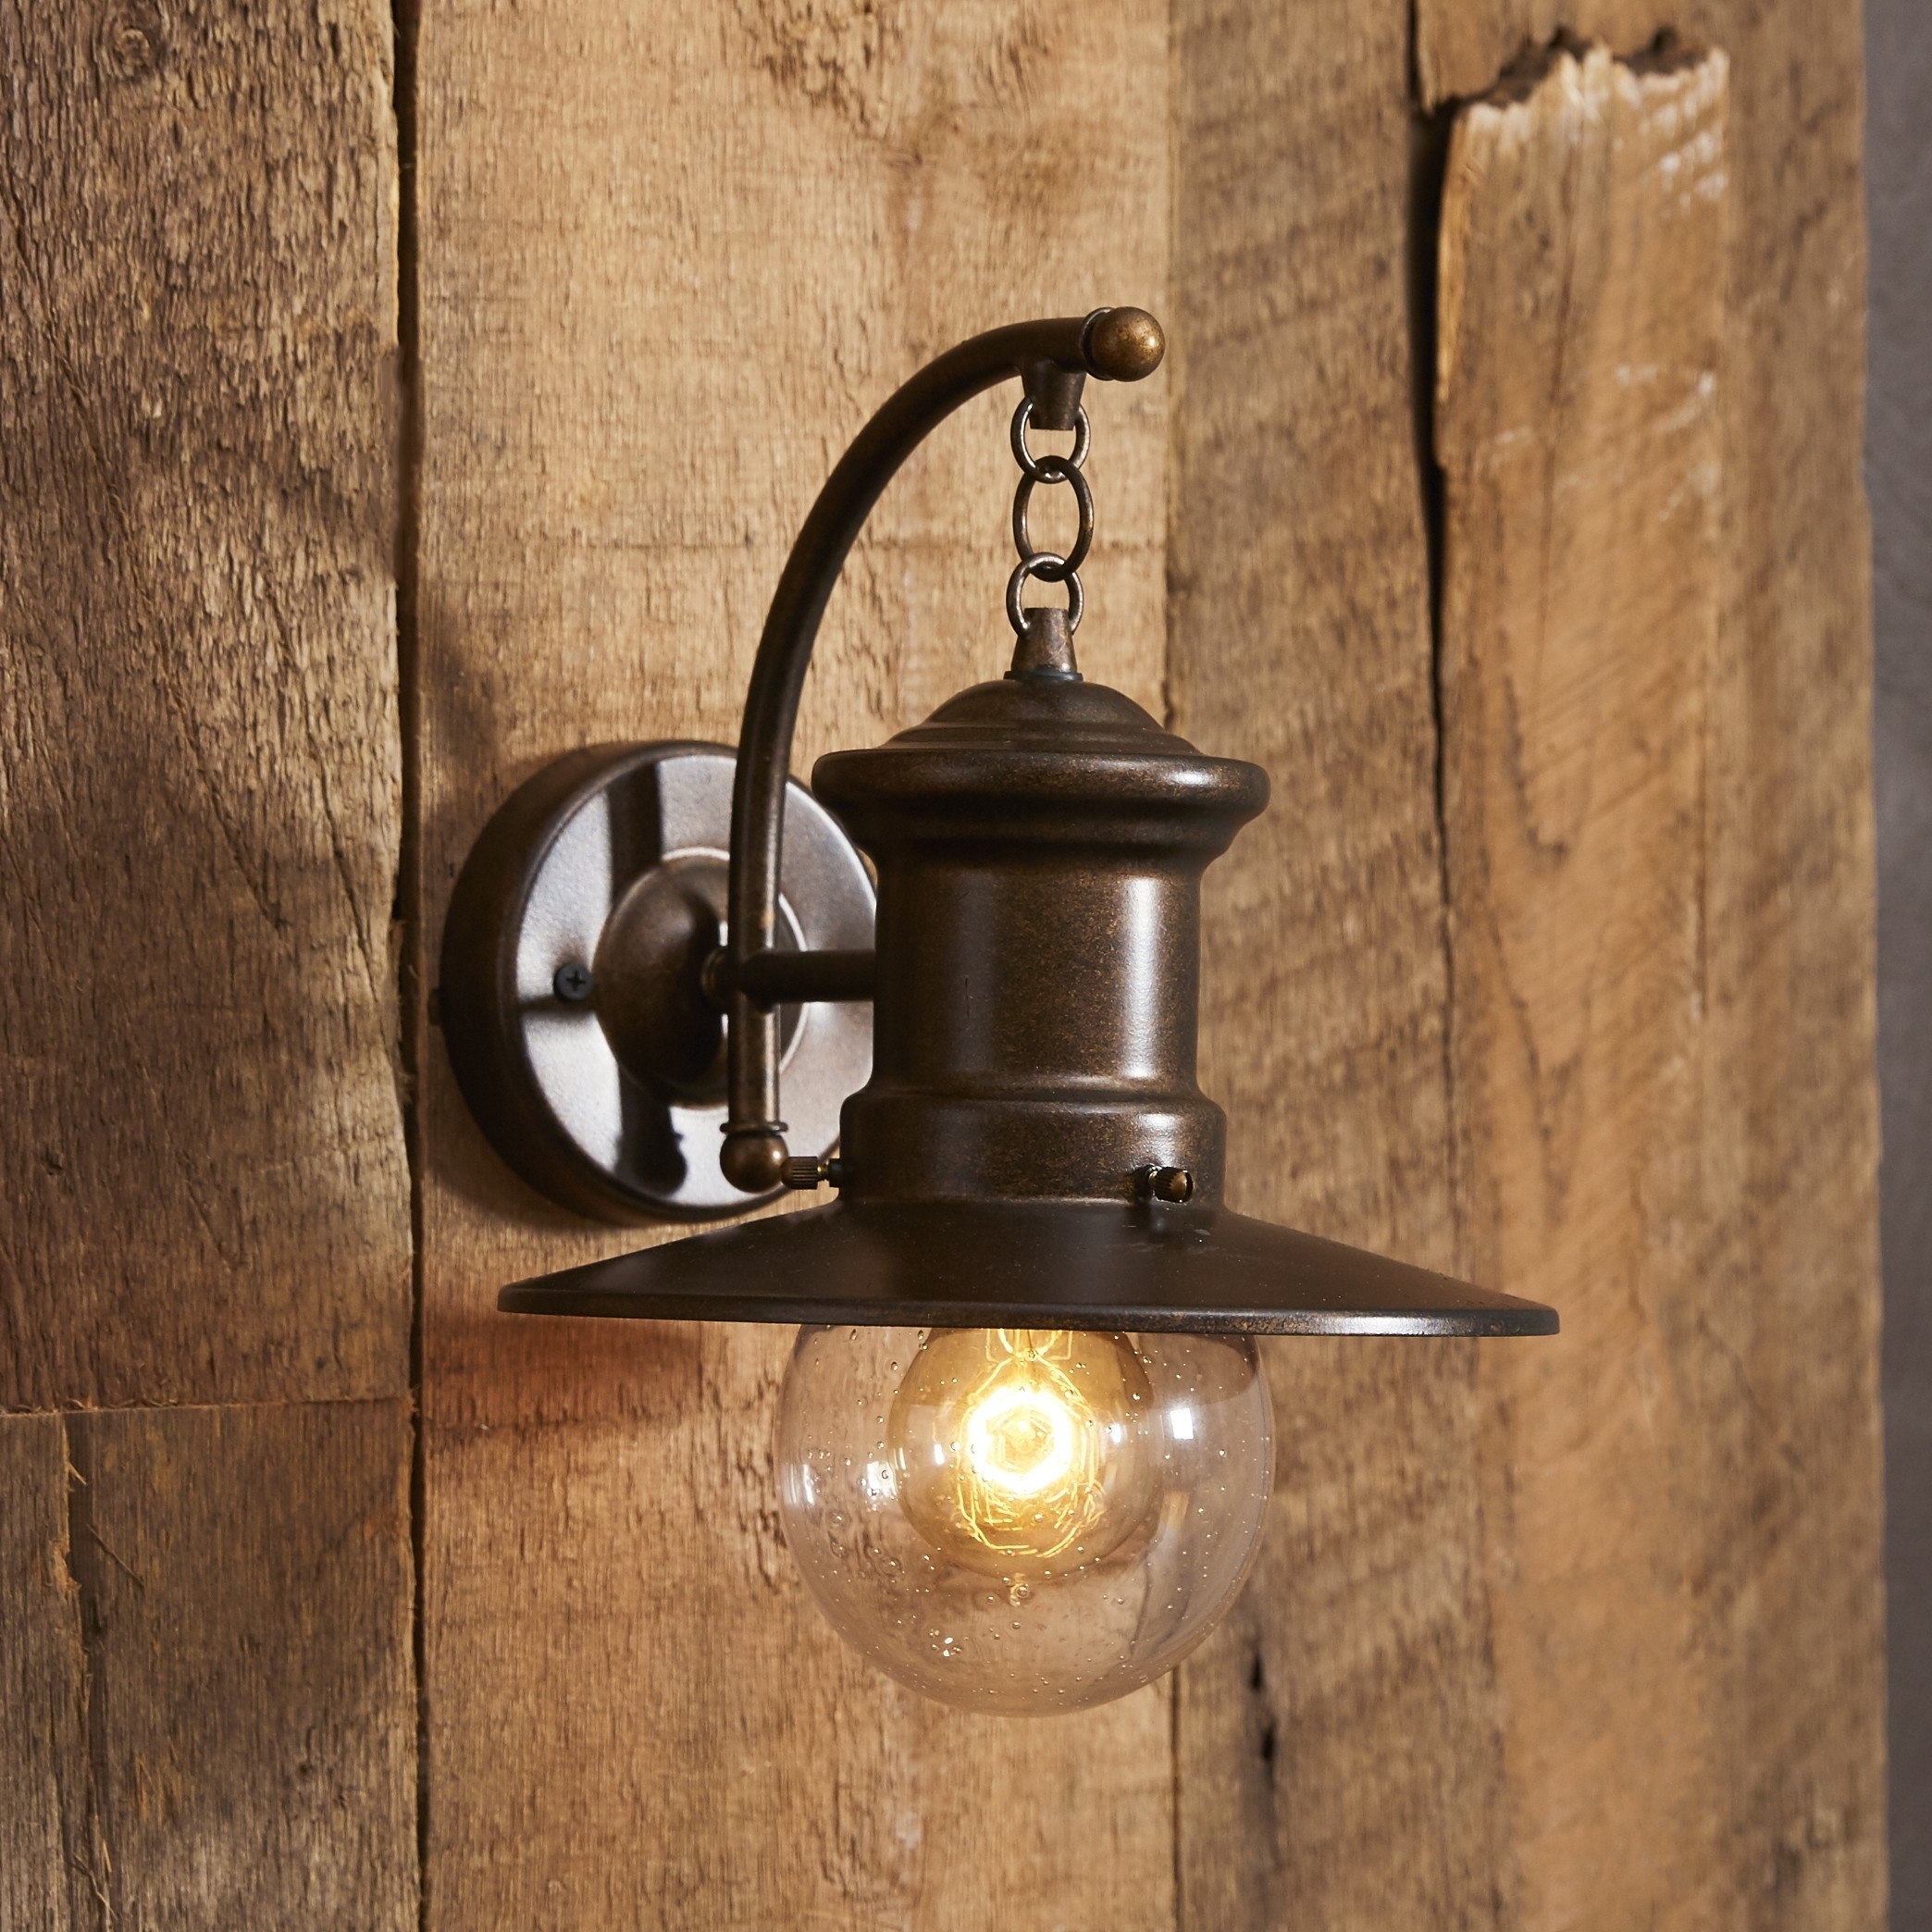 Glamorous Barn Light Sconce 2017 Design Outdoor Barn Lights For Throughout Outdoor Hanging Barn Lights (View 5 of 15)